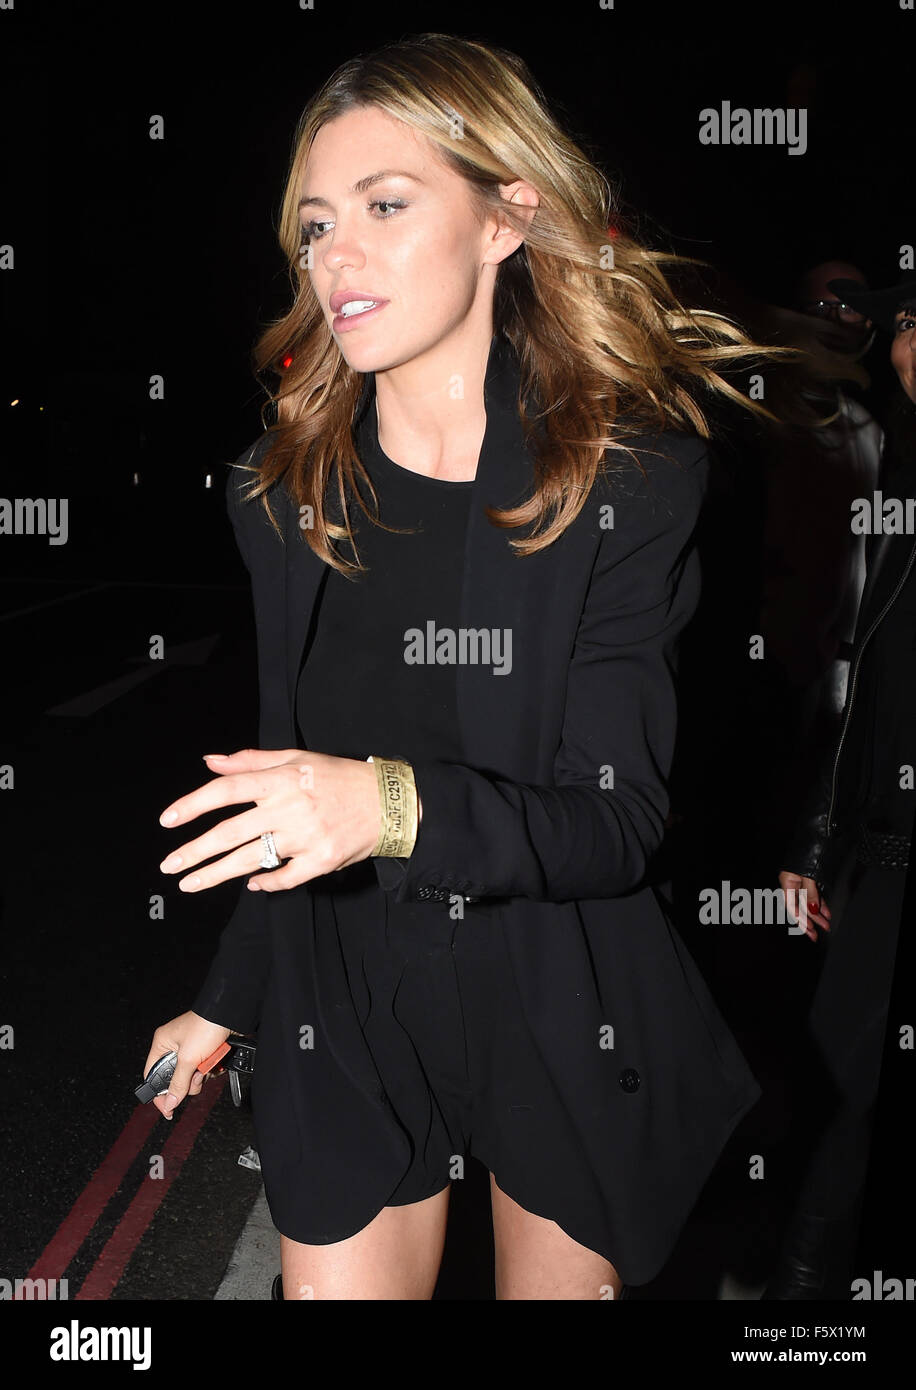 d633f19cc69 Abbey Clancy flashing her long legs in her knee high length leather boots  as she climbed into a waiting taxi with husband Peter Crouch at Koko Camden.